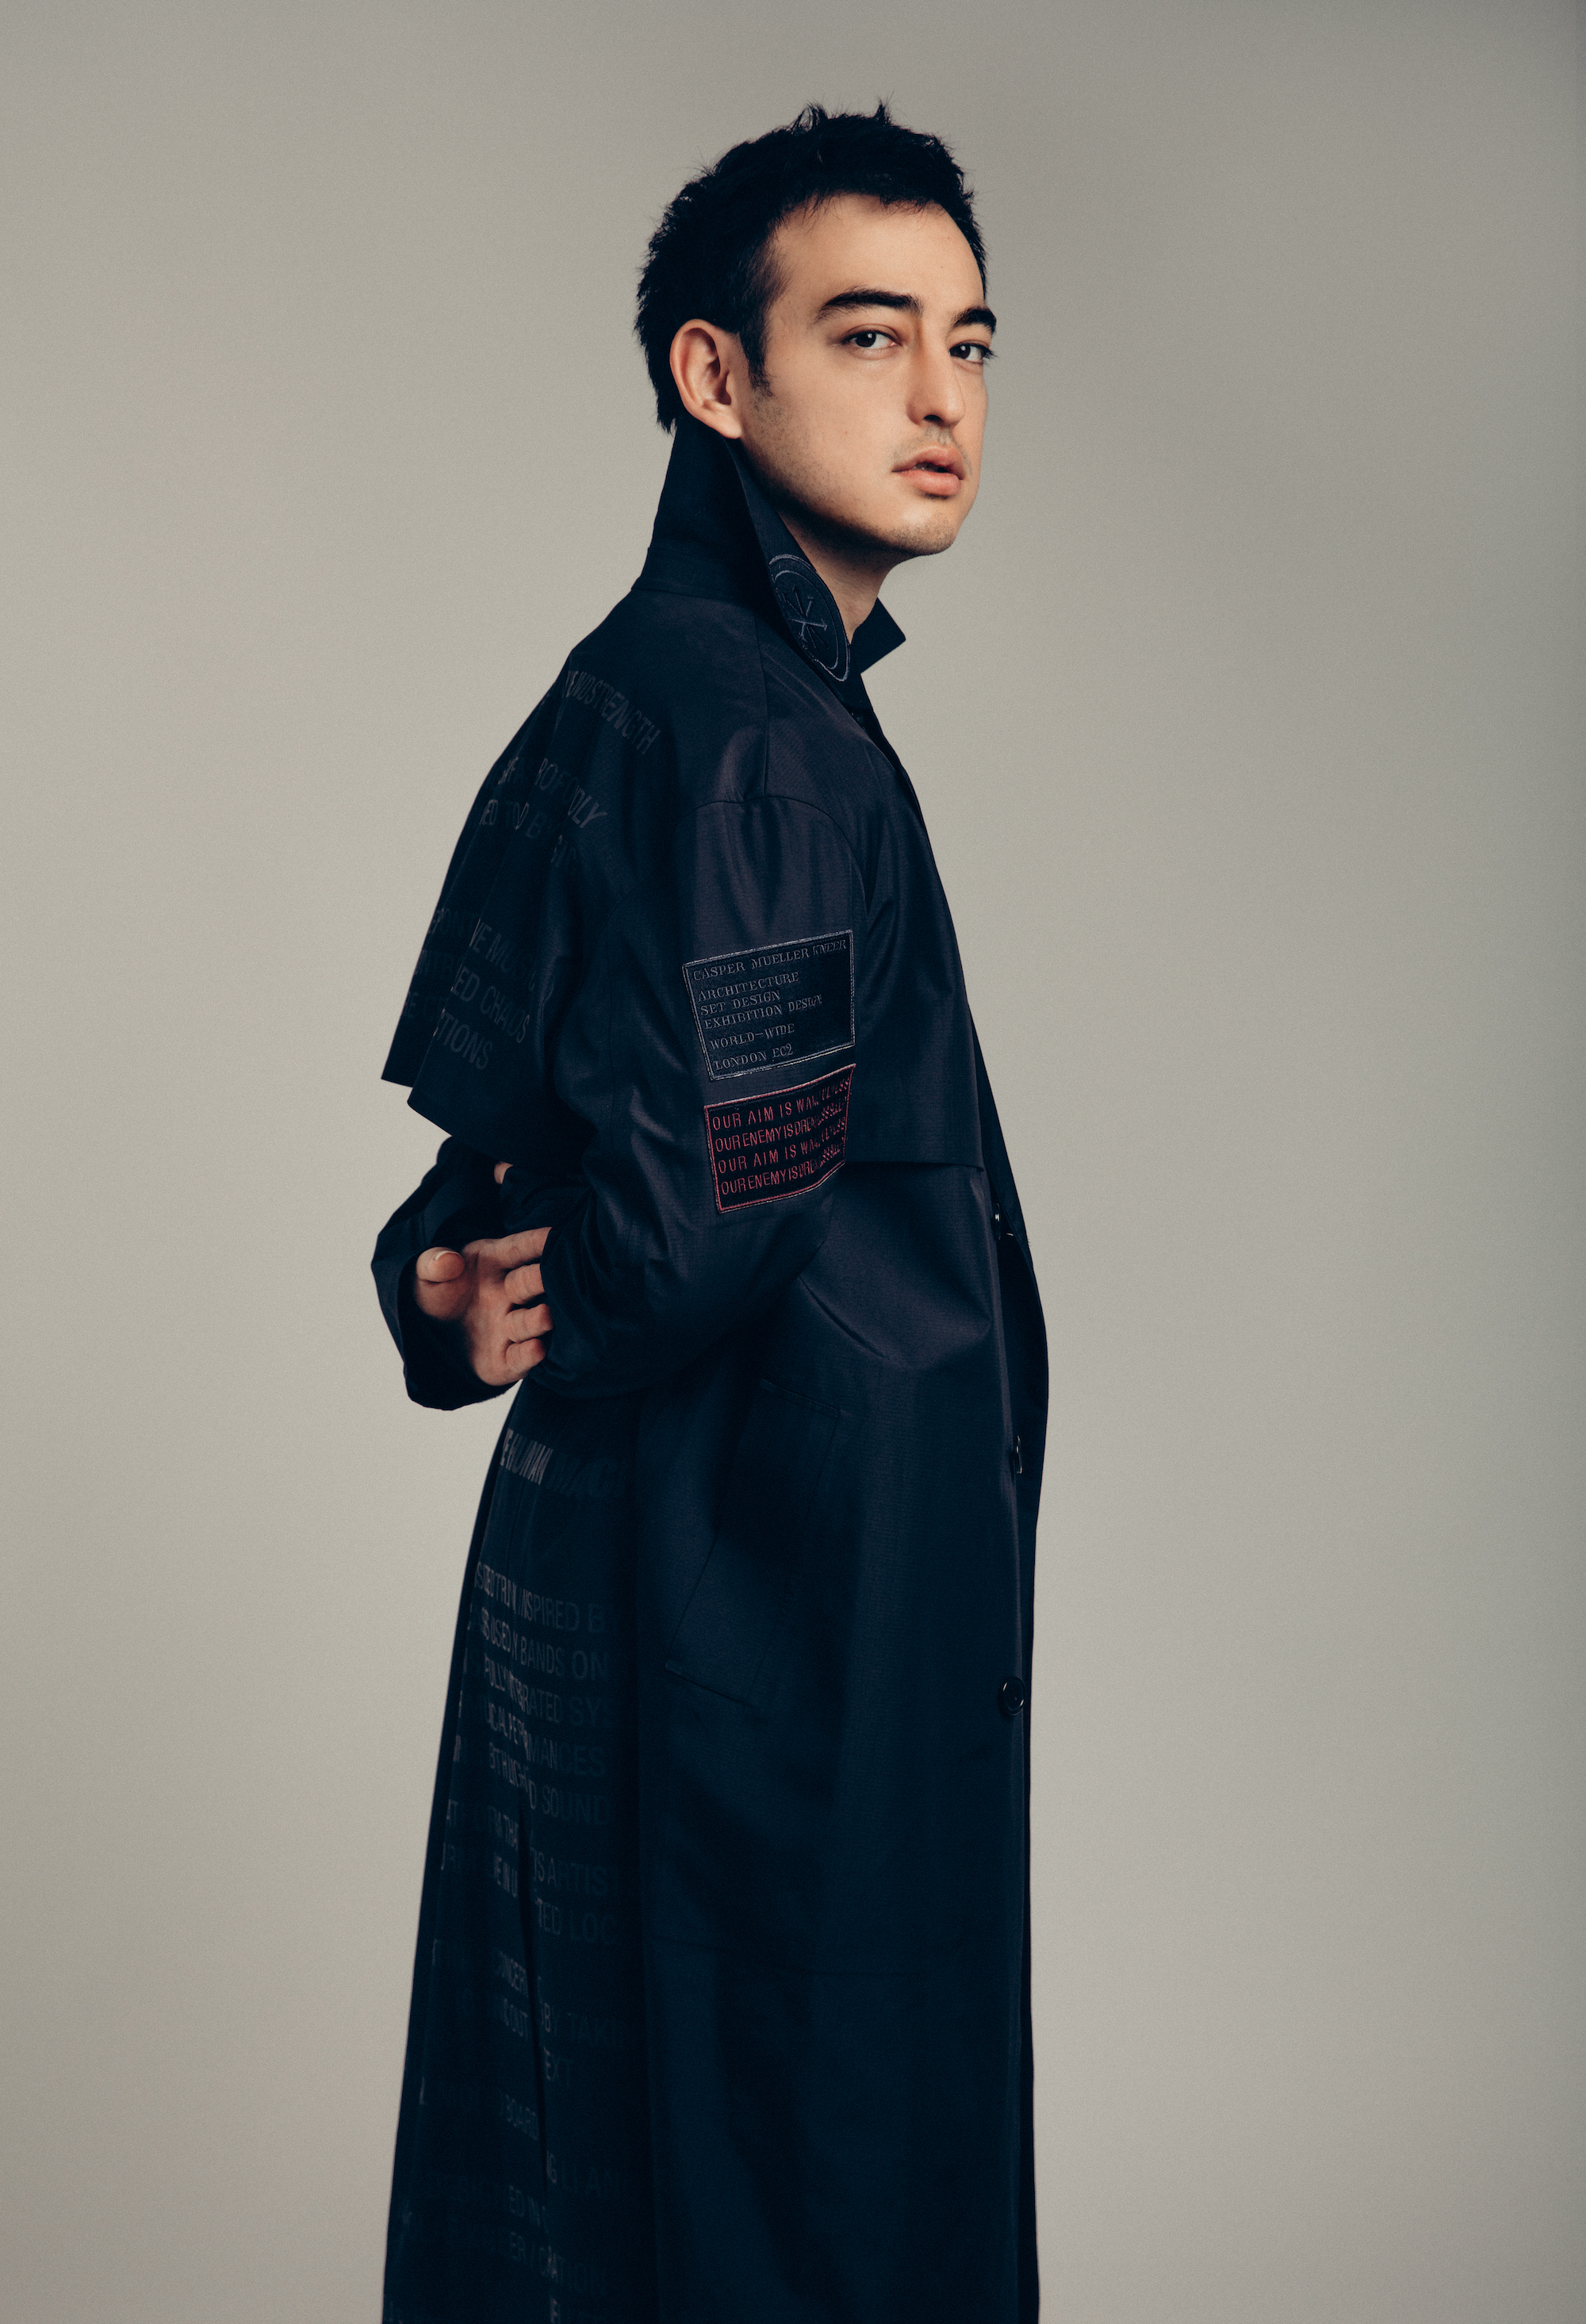 Youtuber and singer George Miller, aka Joji, from Spring 19 Wonderland issue black coat